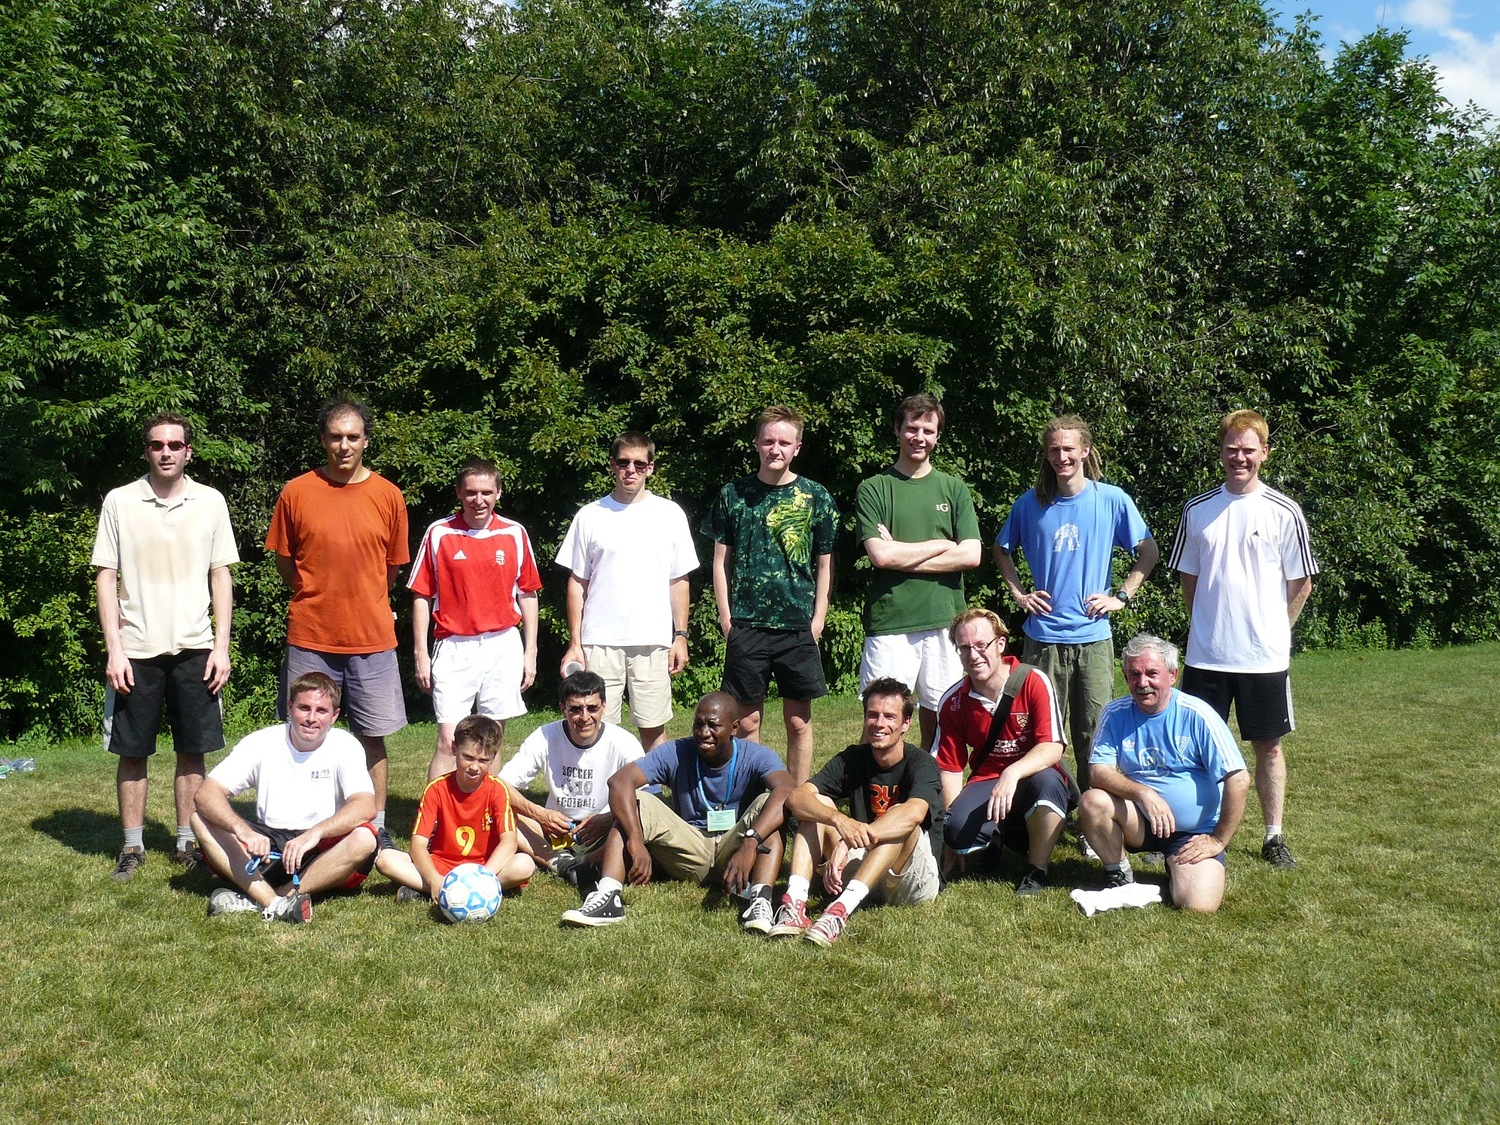 2008 Gordon Research Conferences: Oscillations & Dynamic Instability In Chemical Systems - Football